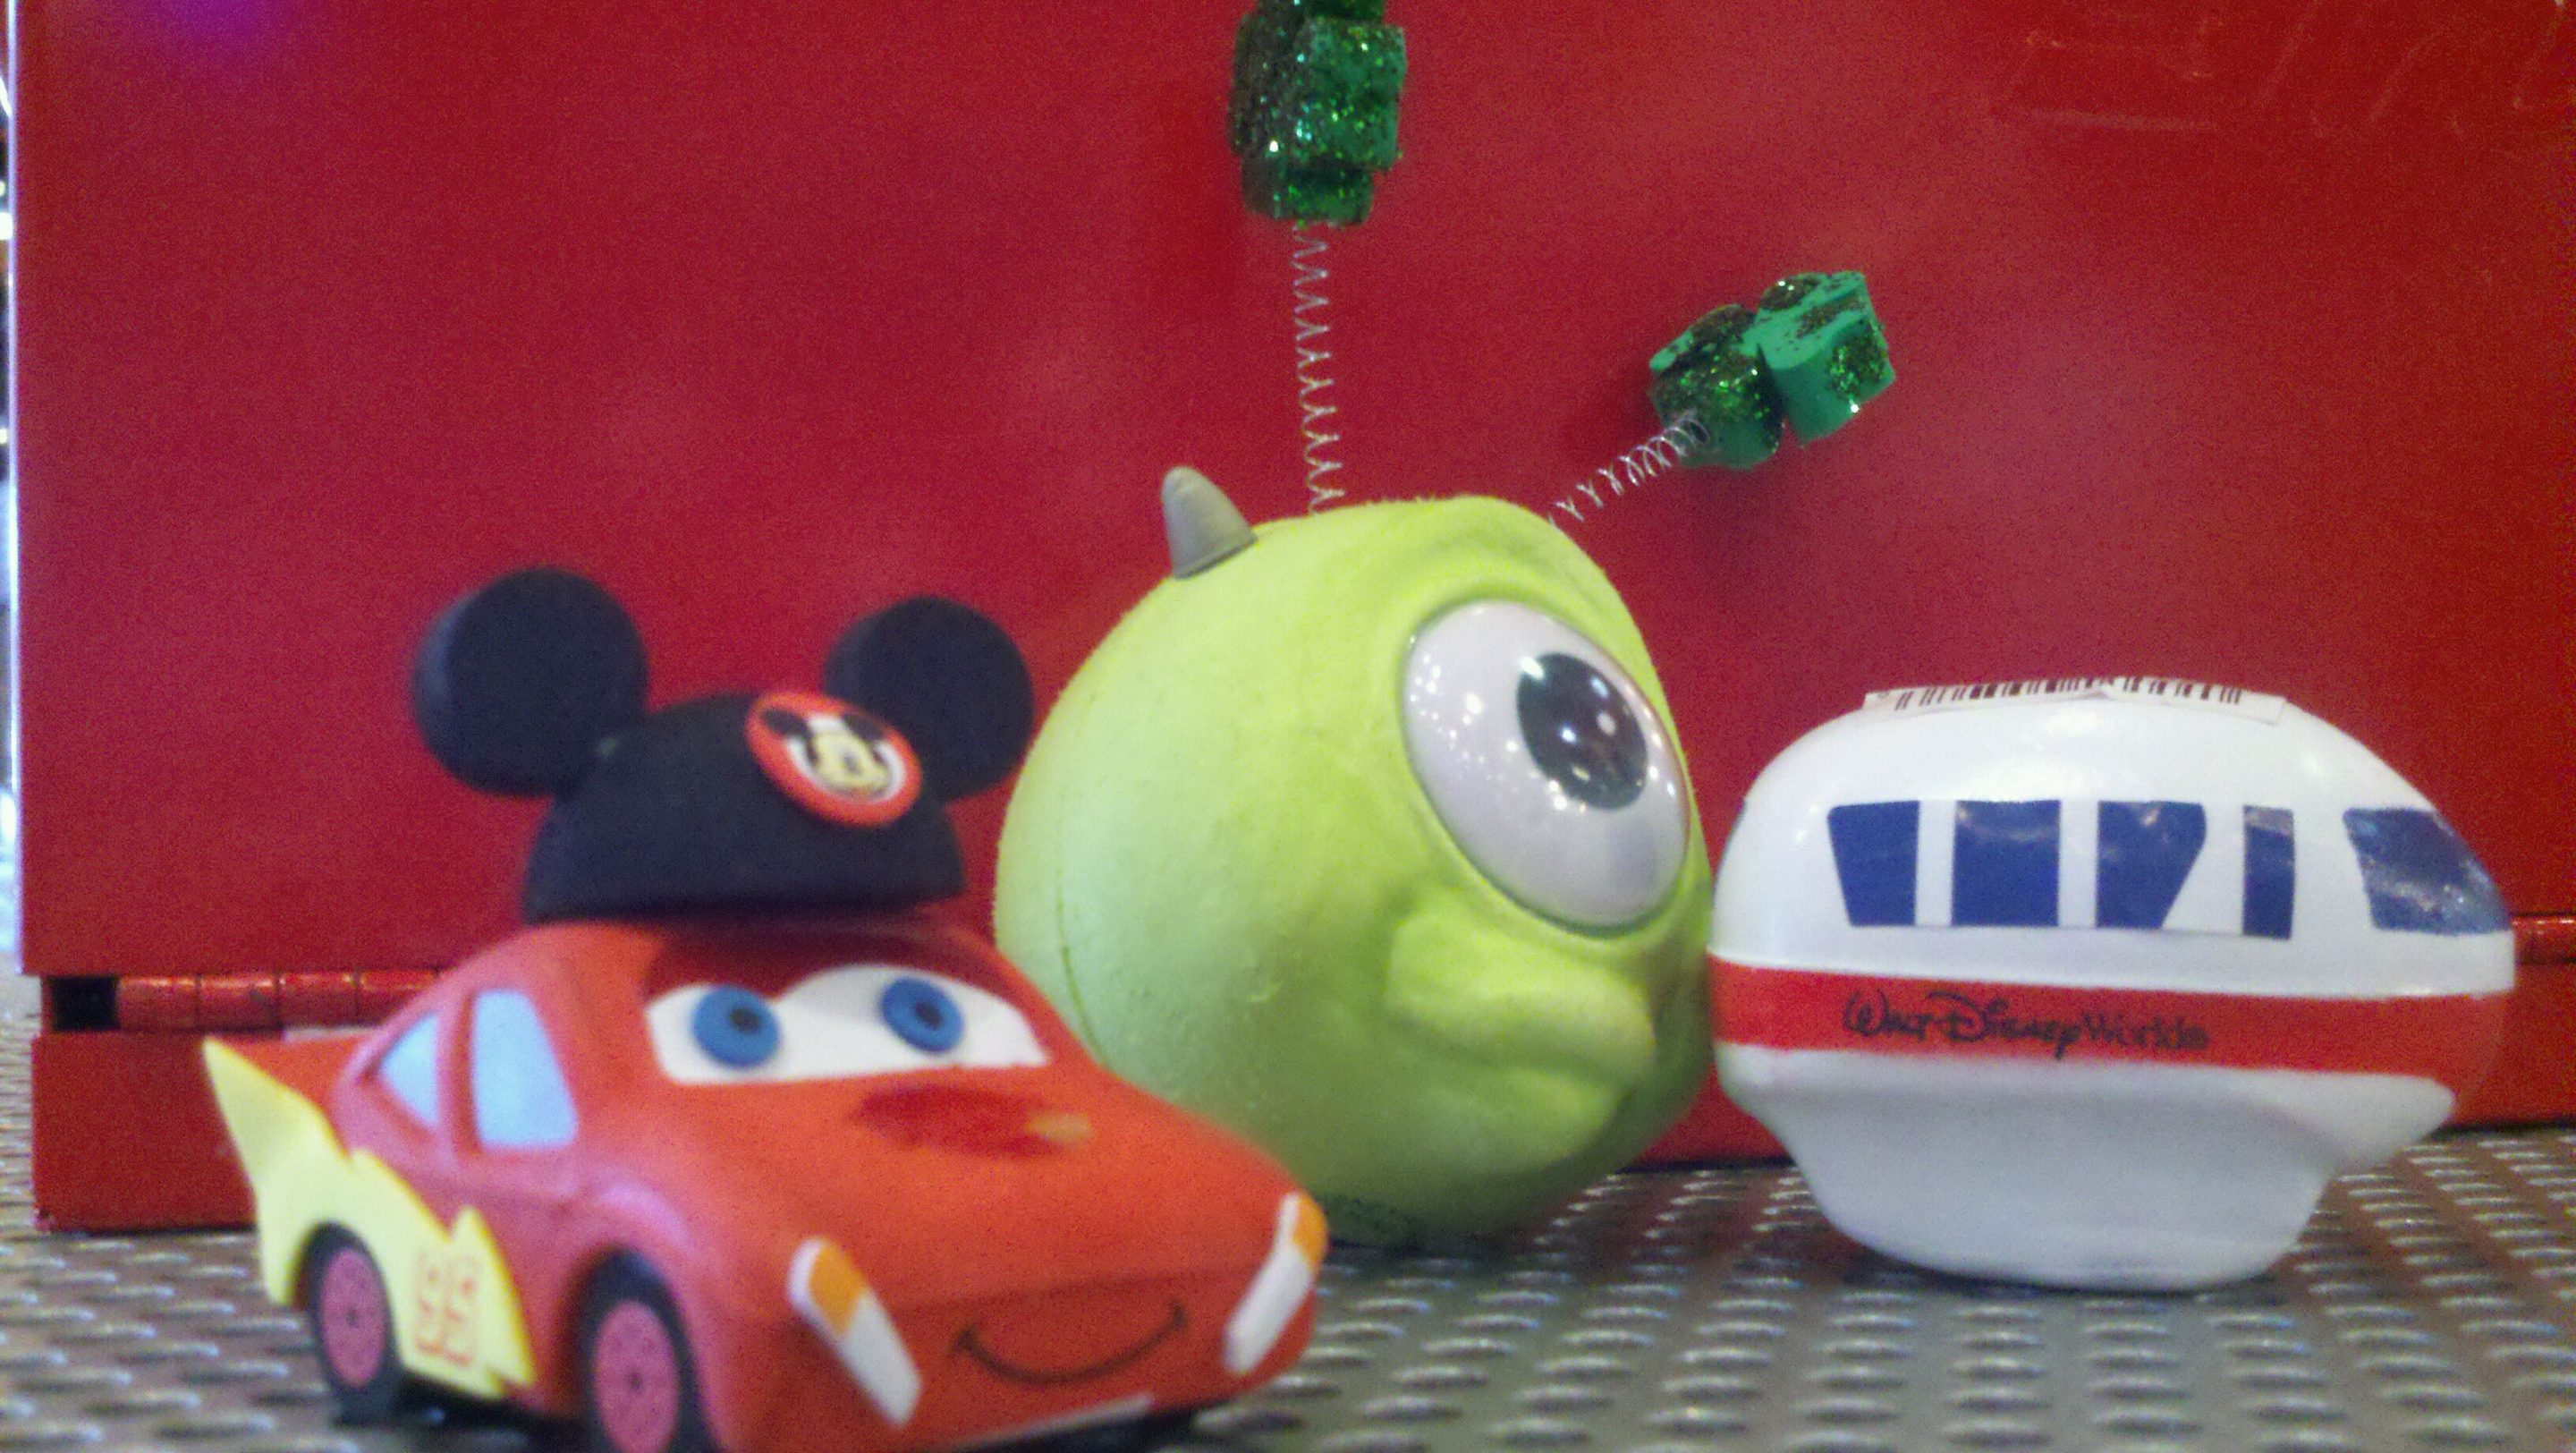 Disney Cars Monsters Inc Monorail antenna topper